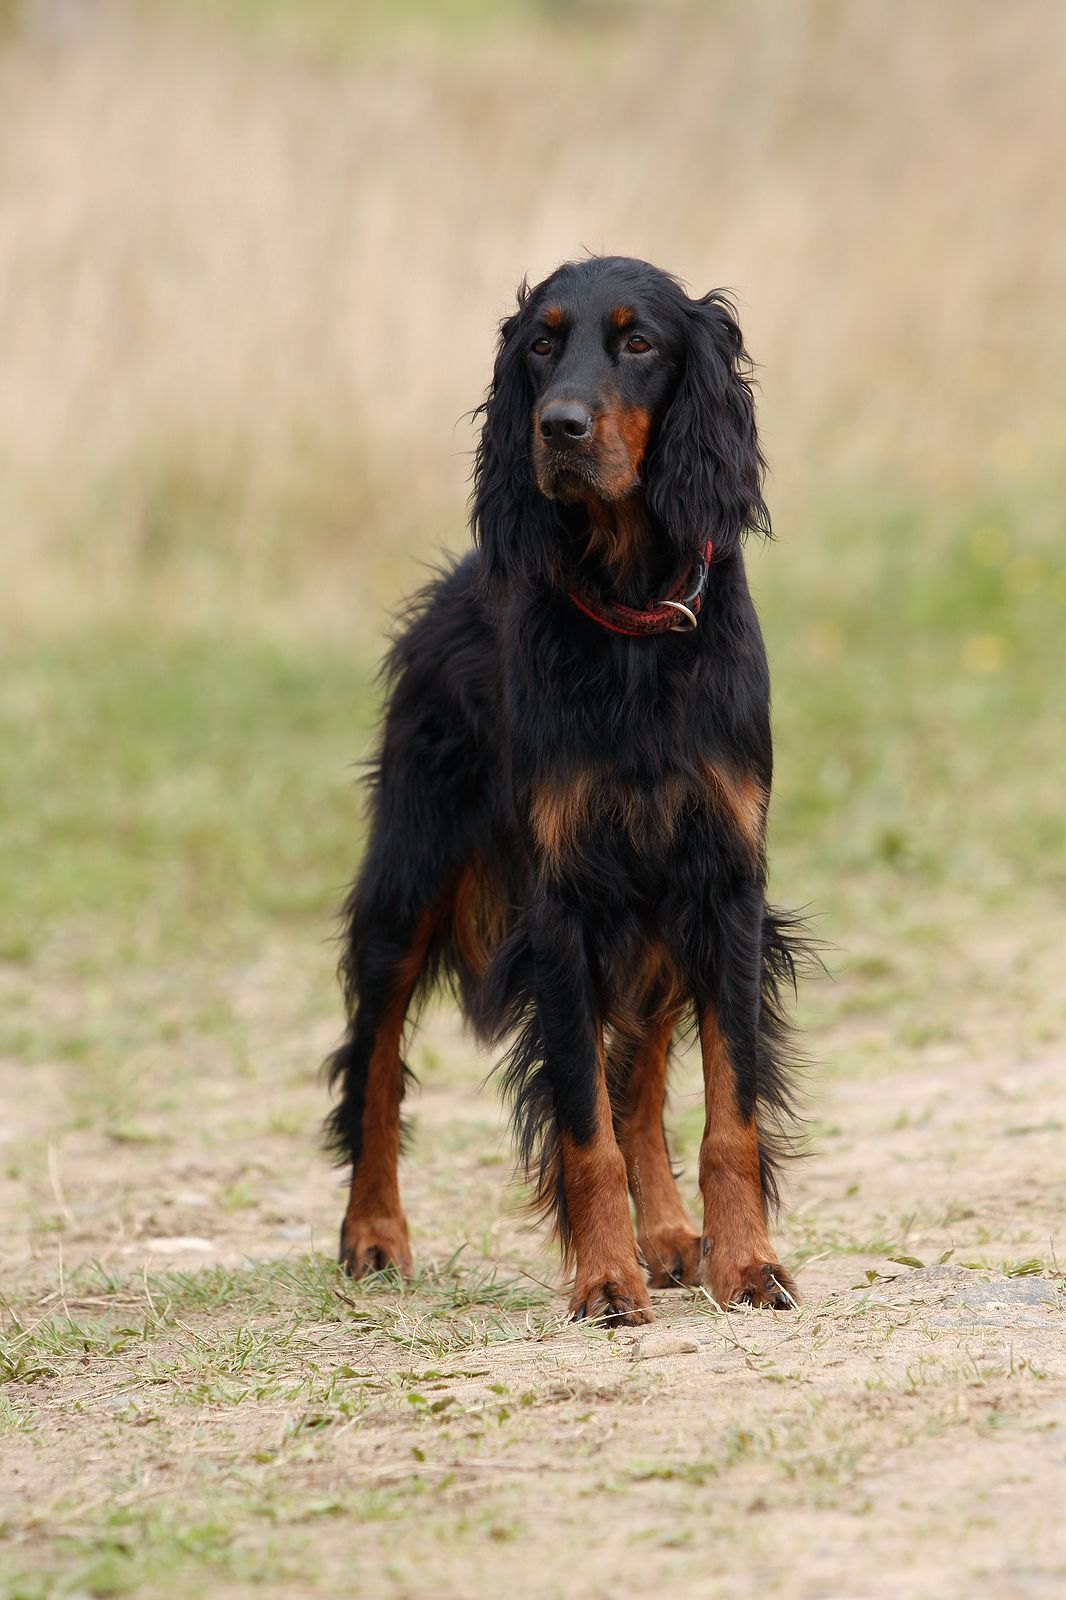 Gordon Setter. Our family had a mix of this dog and a